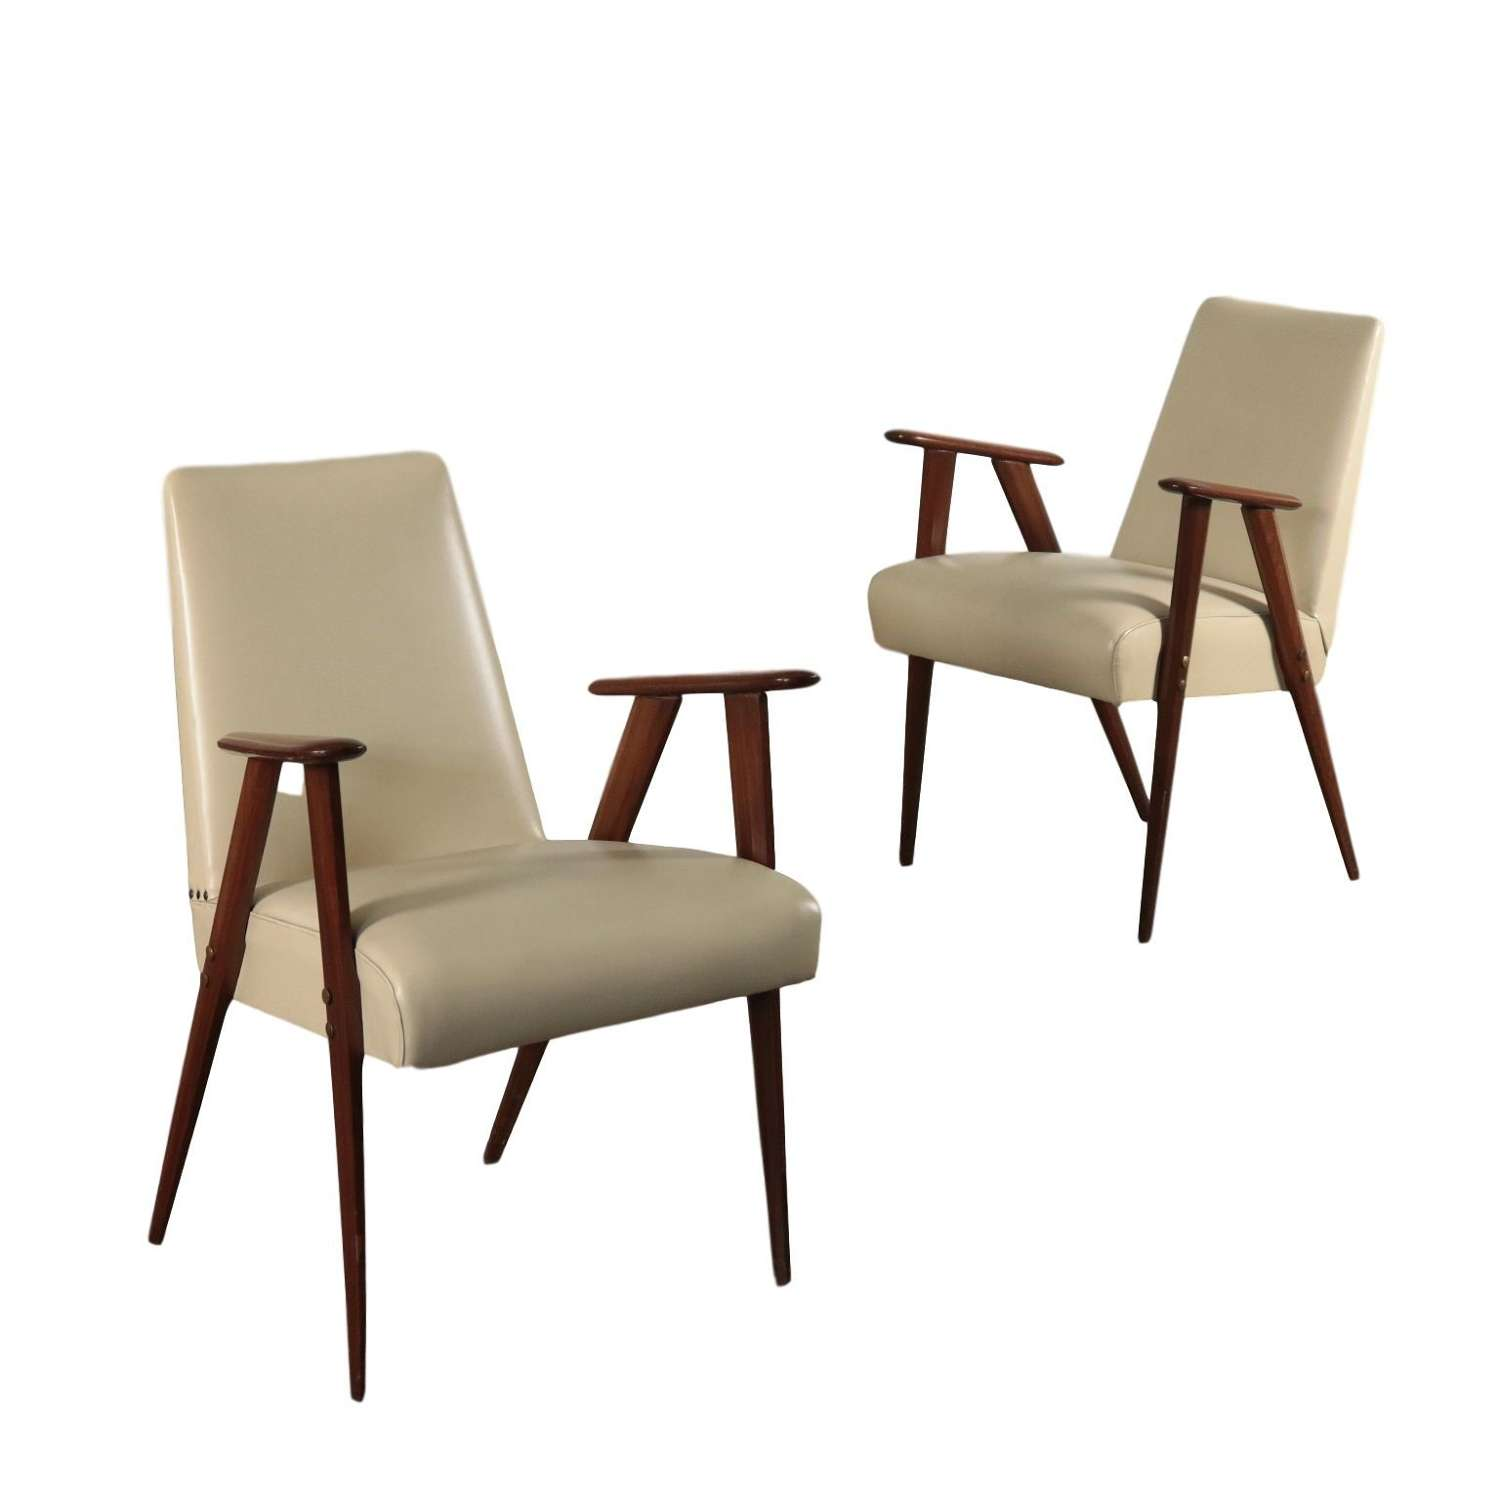 Pair of Giò Ponti chairs